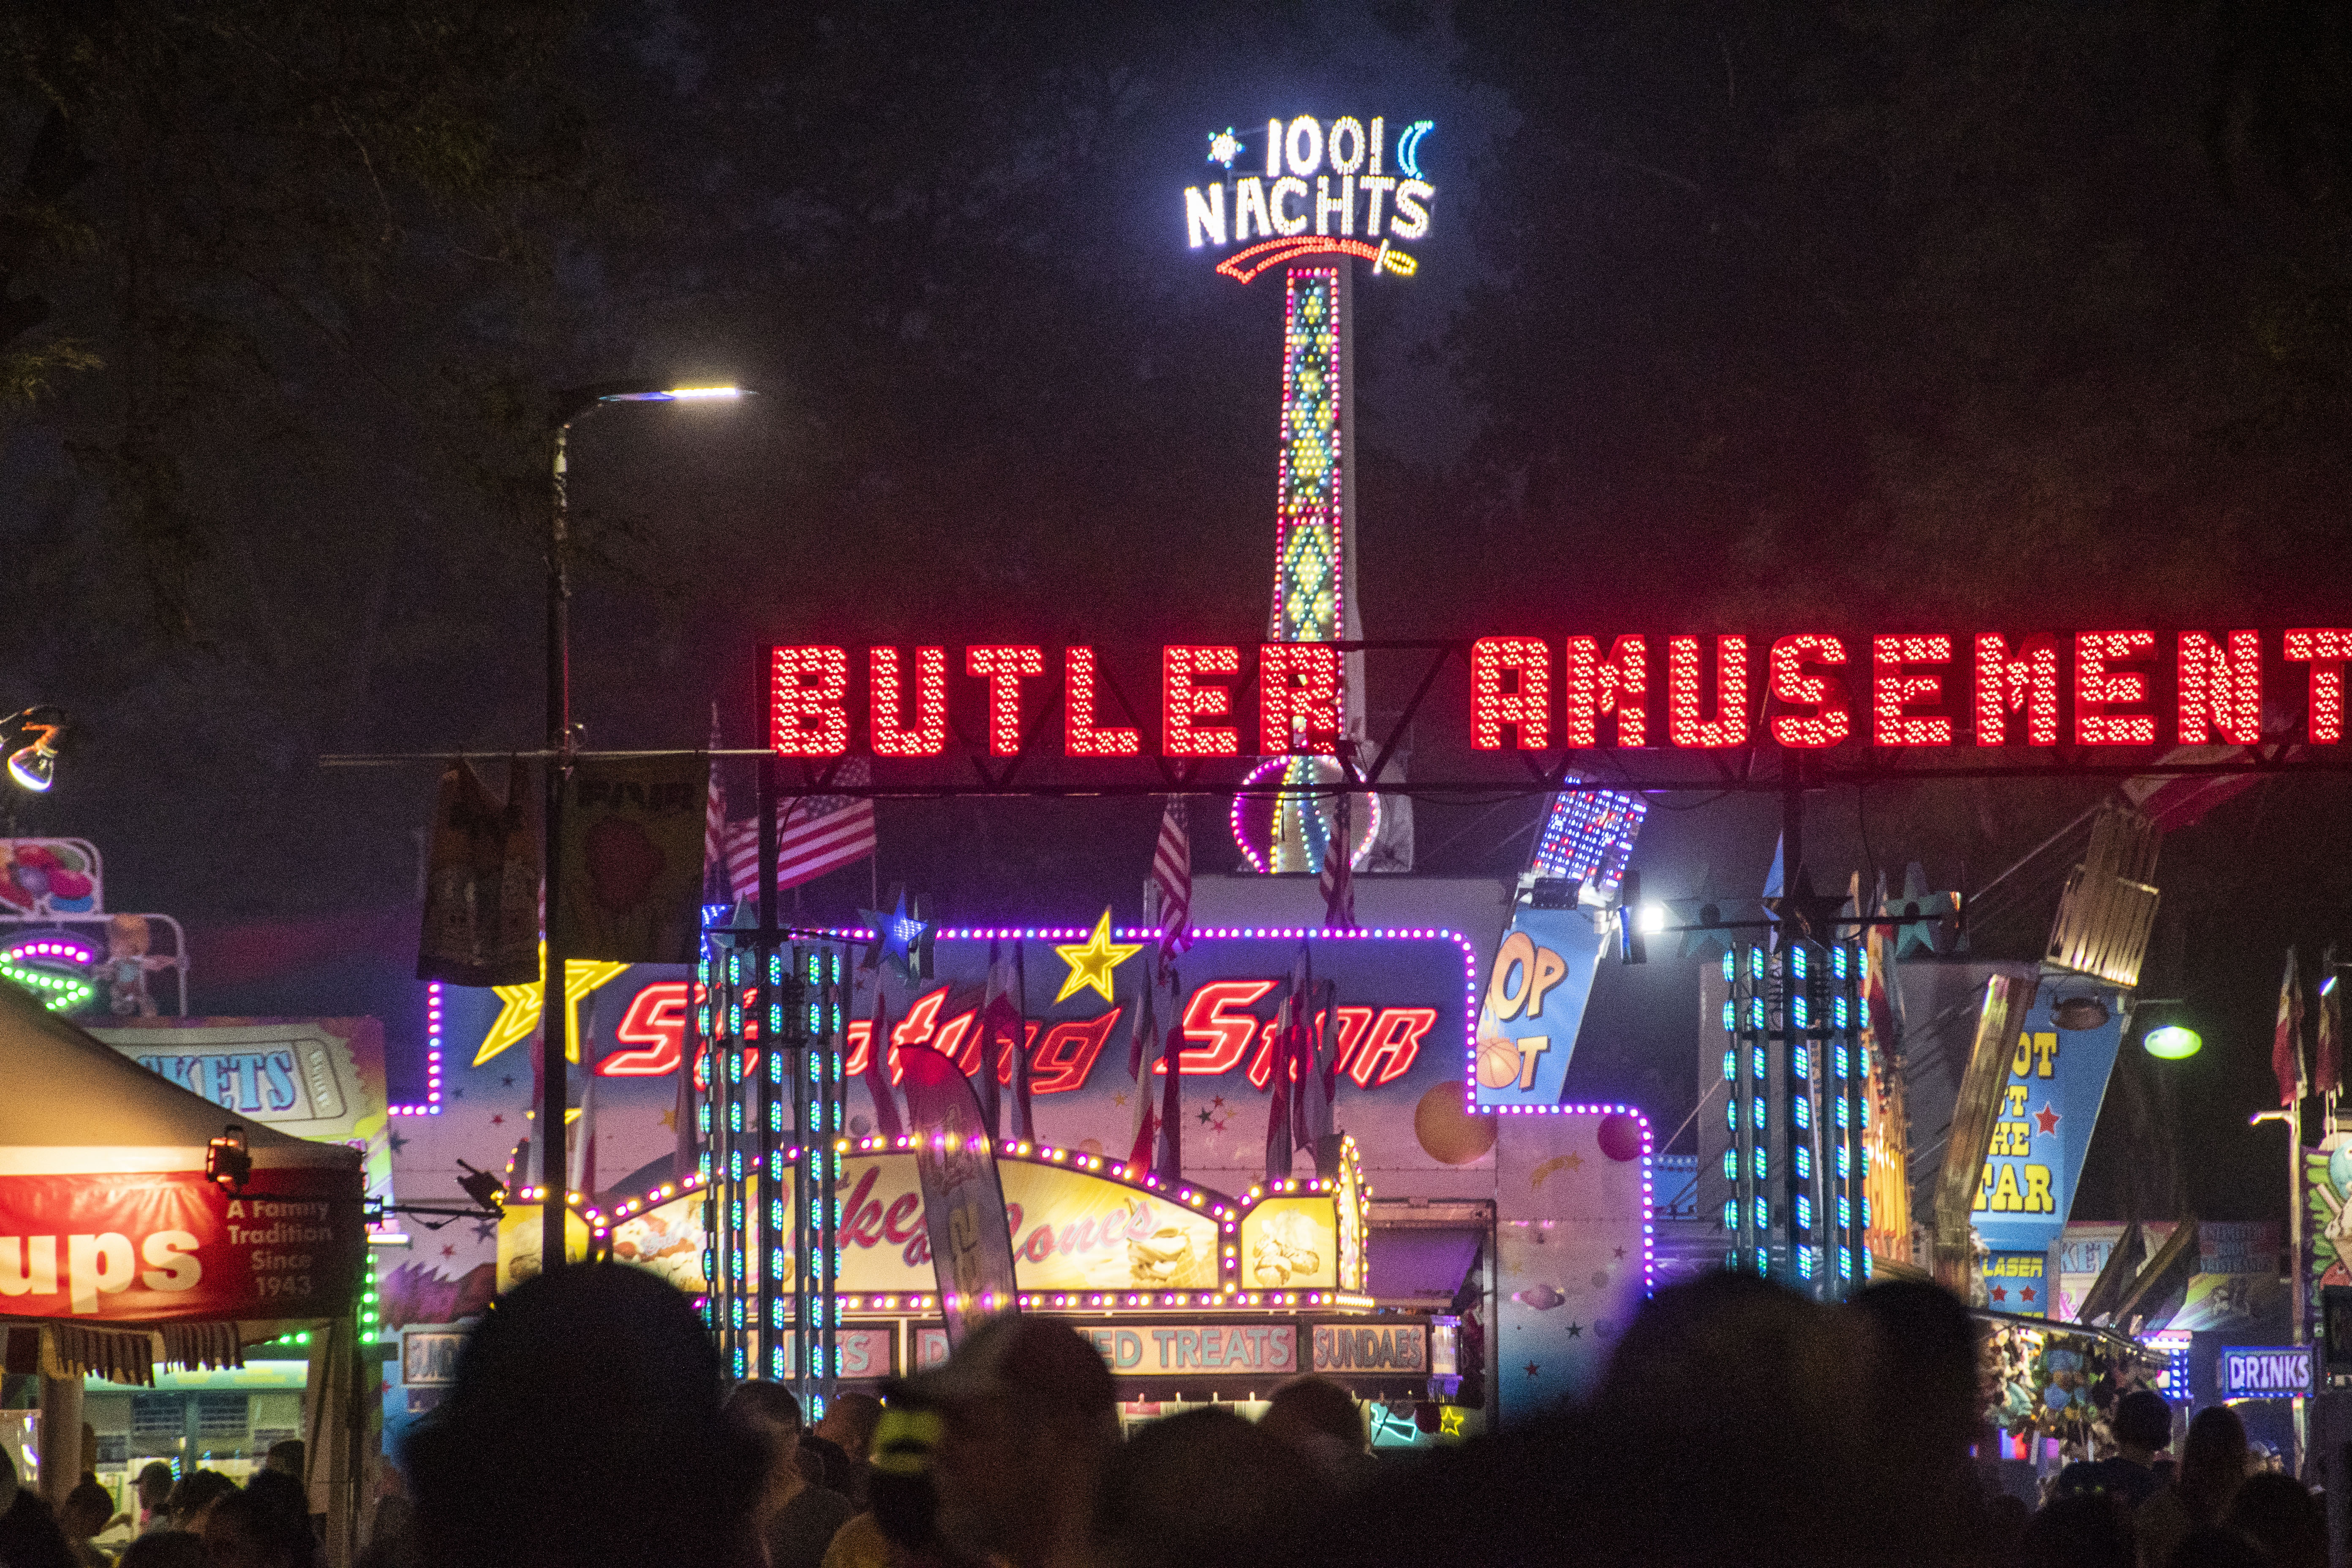 Friday night was the first evening of the Western Idaho Fair. It will continue through August 26.